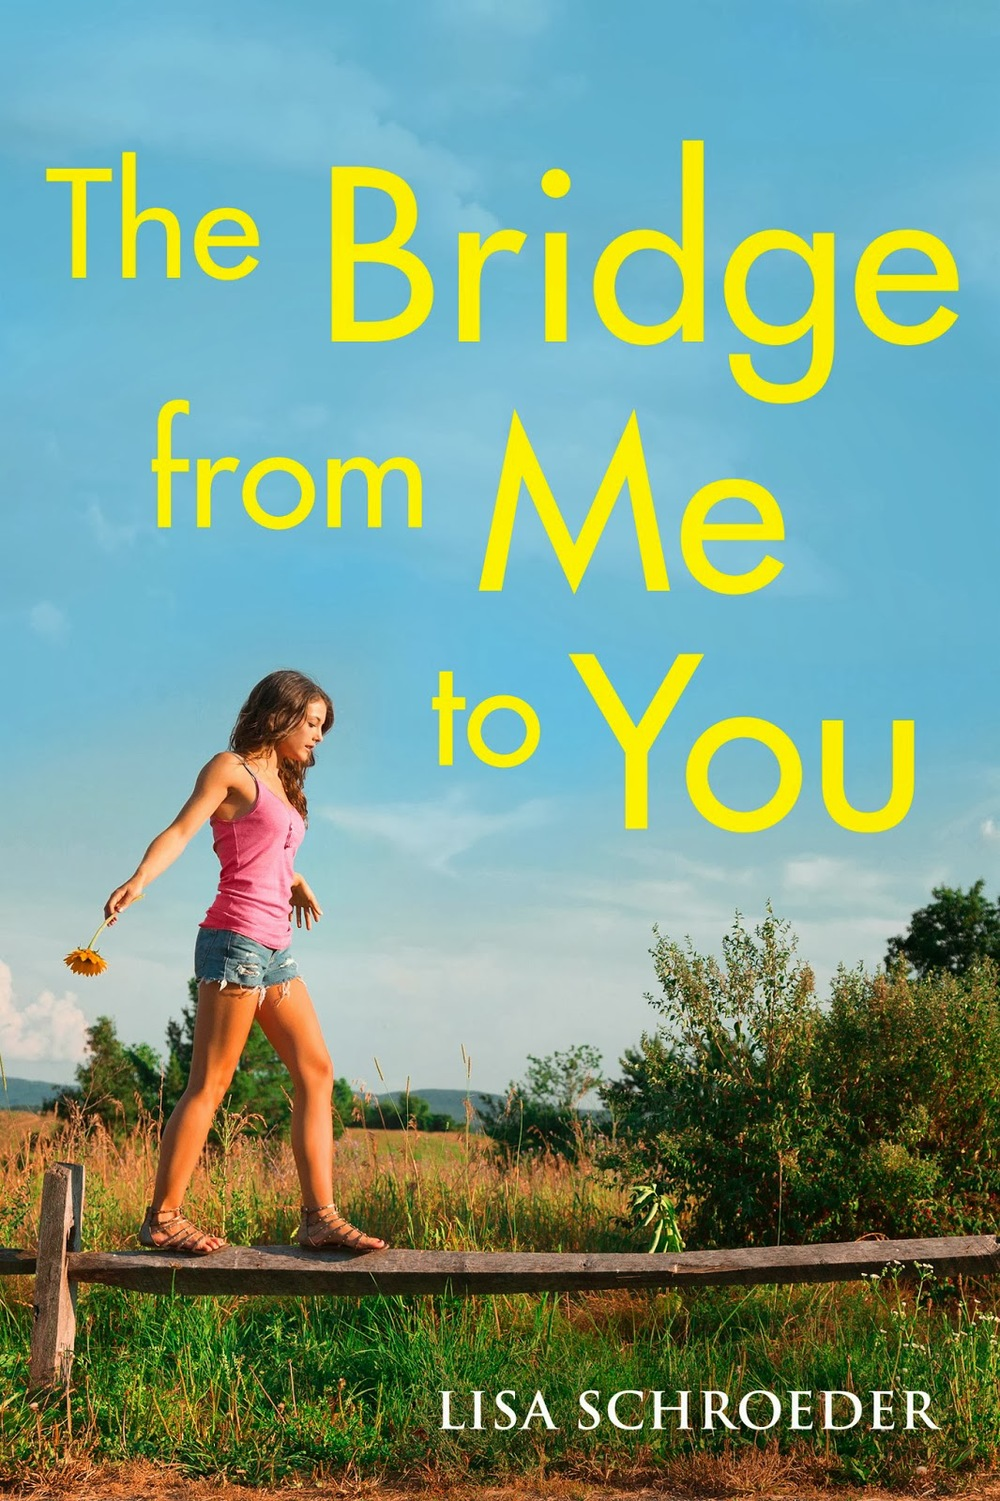 The Bridge from Me to You by Lisa Schroeder | Clear Eyes, Full Shelves